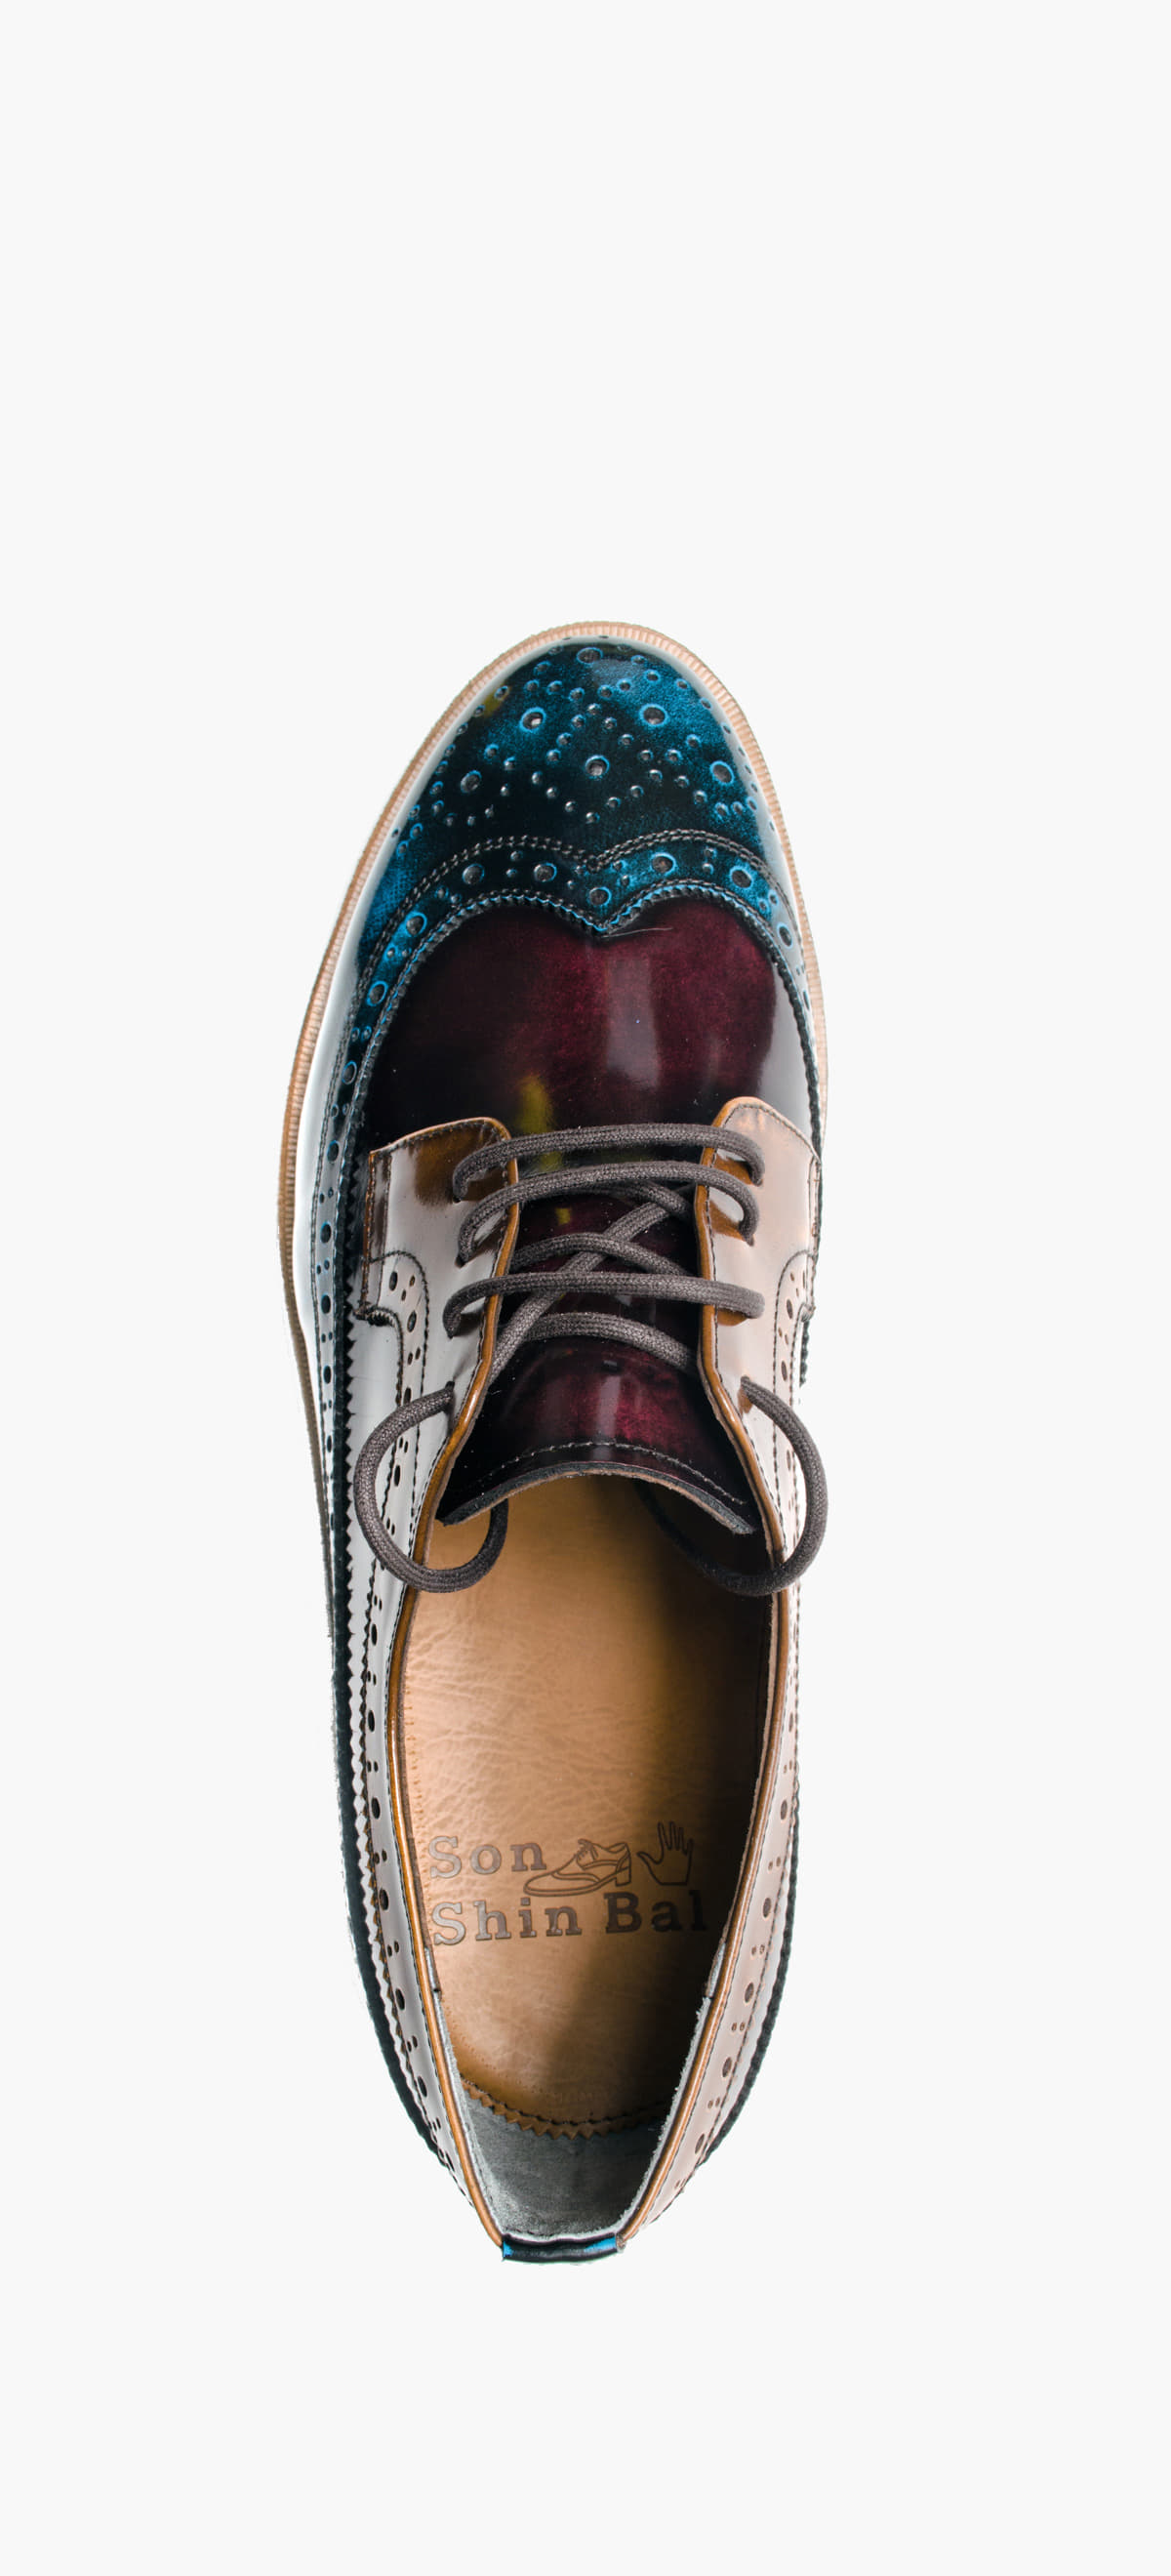 Wing Tip 0027-31 Blue Combination